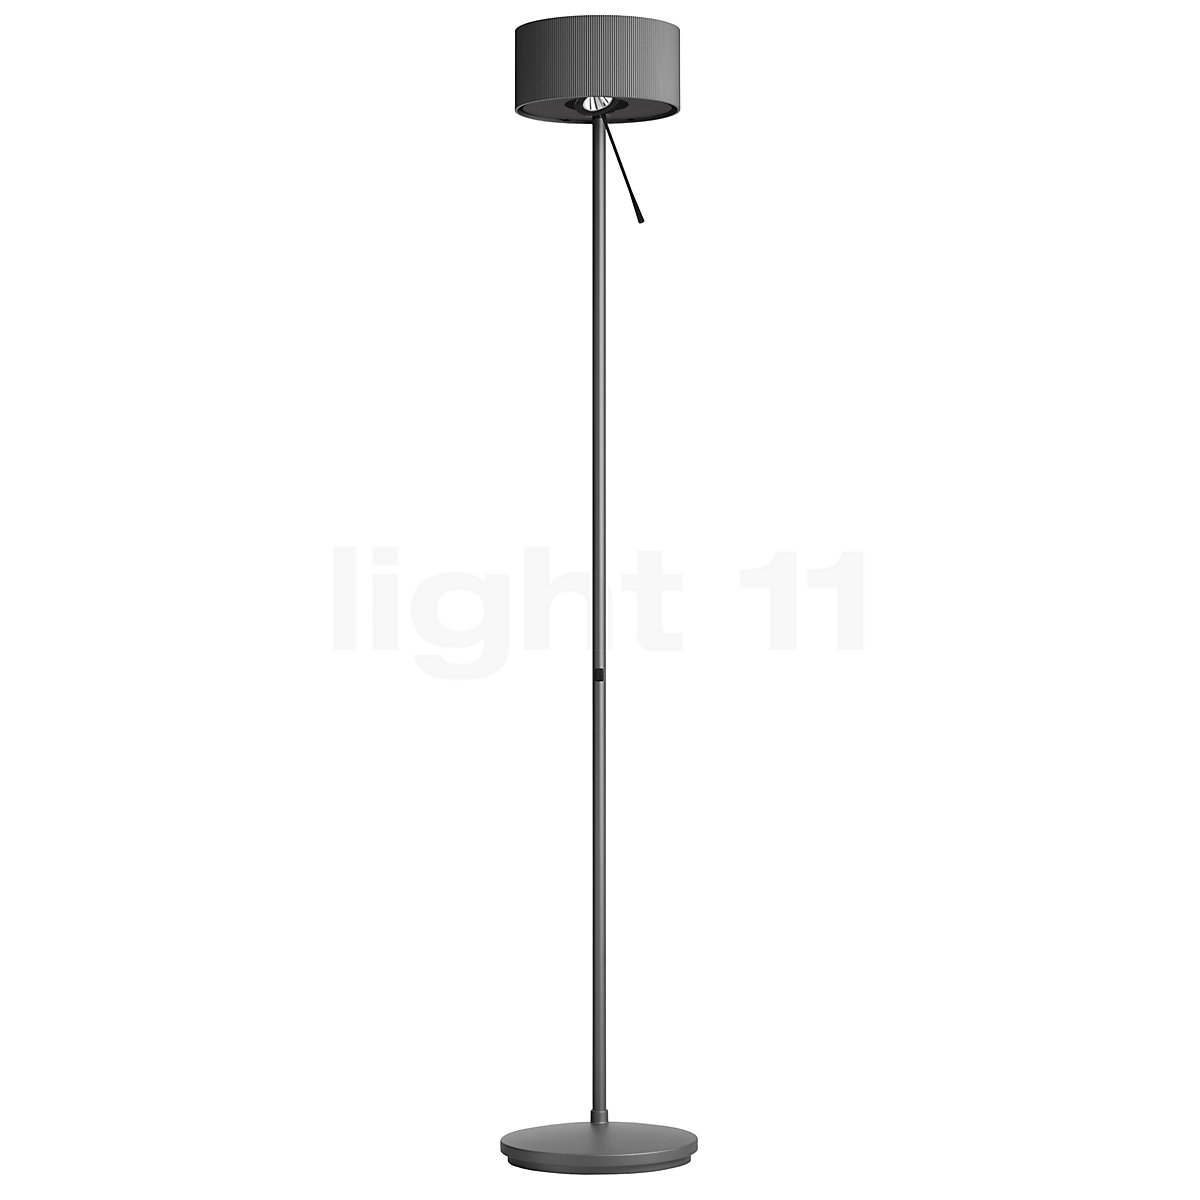 Buy Belux Diogenes Floor Lamp Led At Light11 Eu